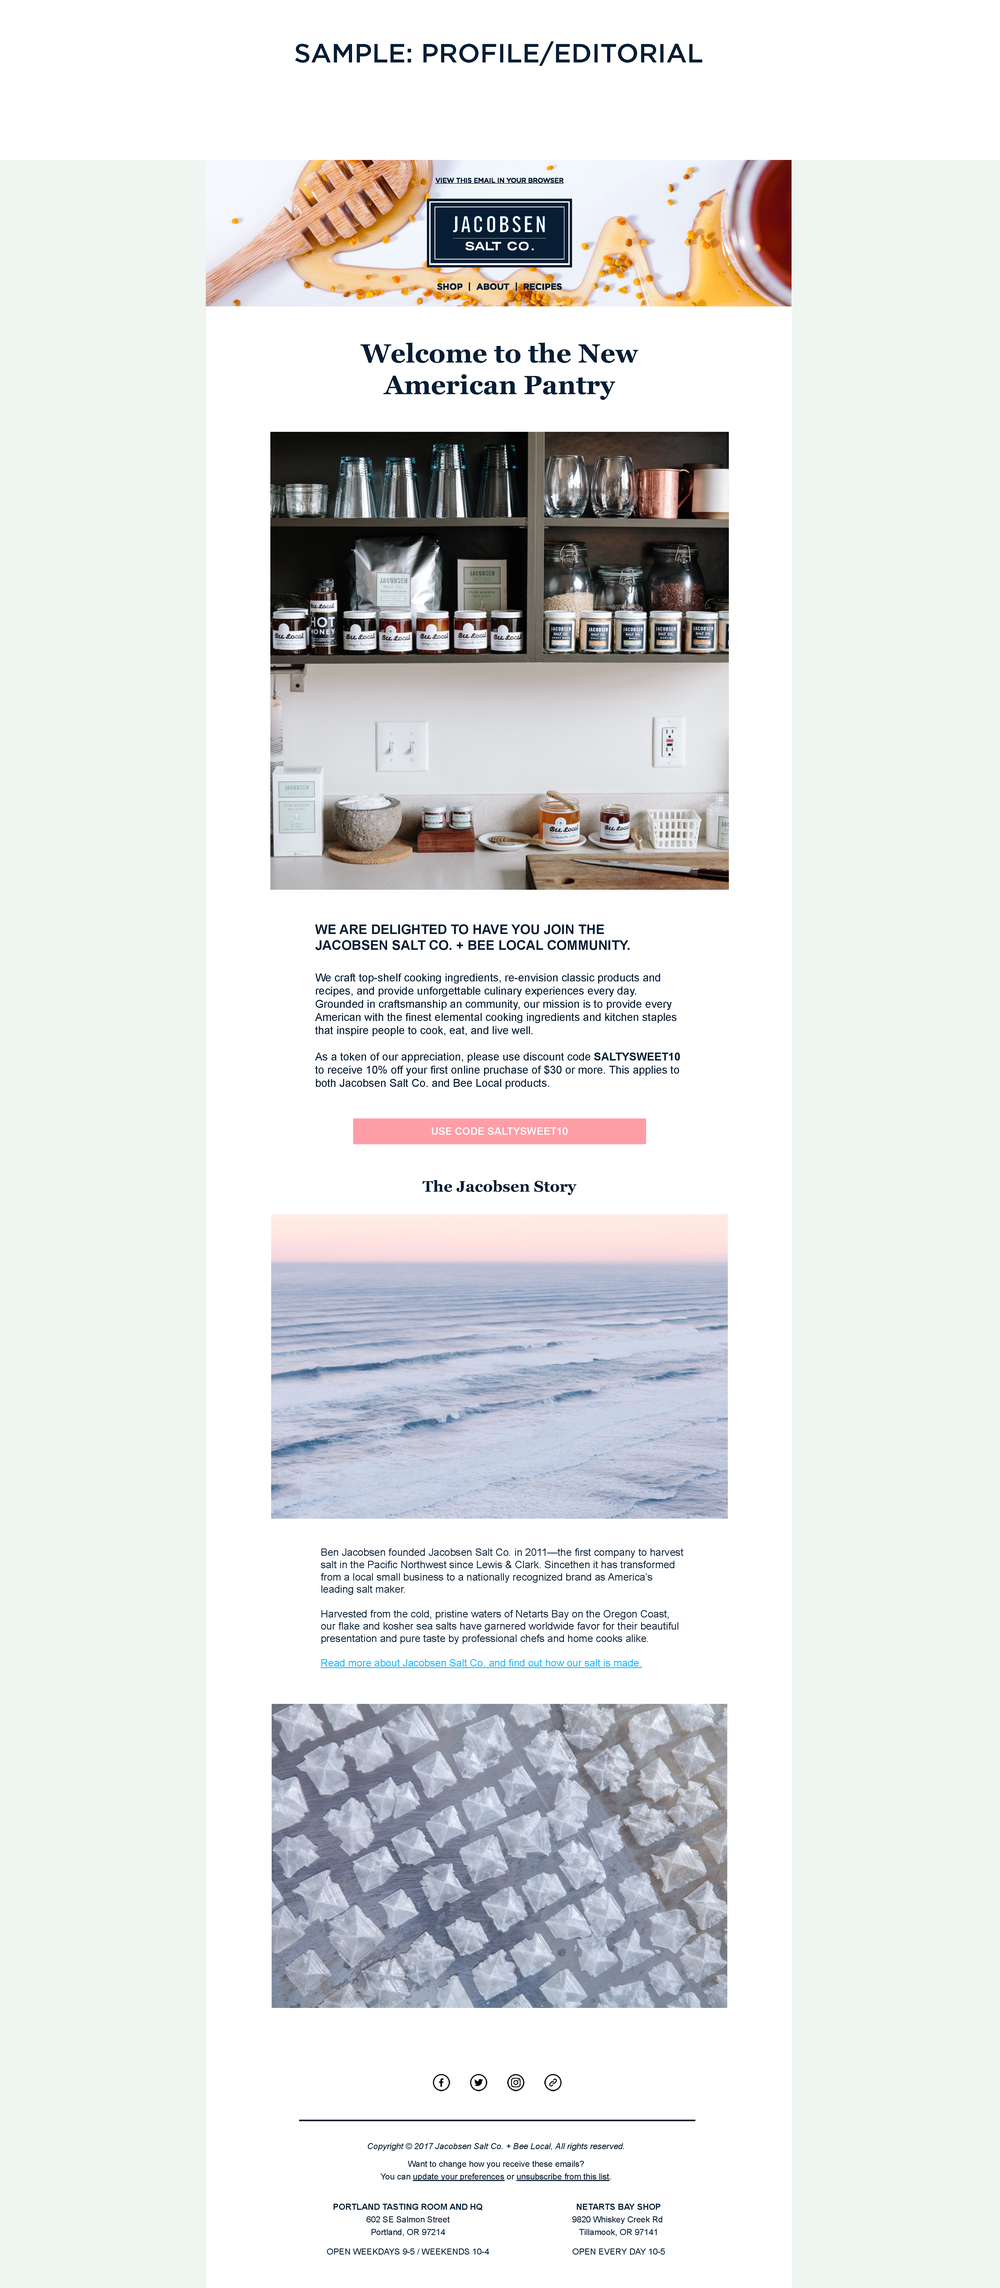 Email newsletter templates_Page_5.png